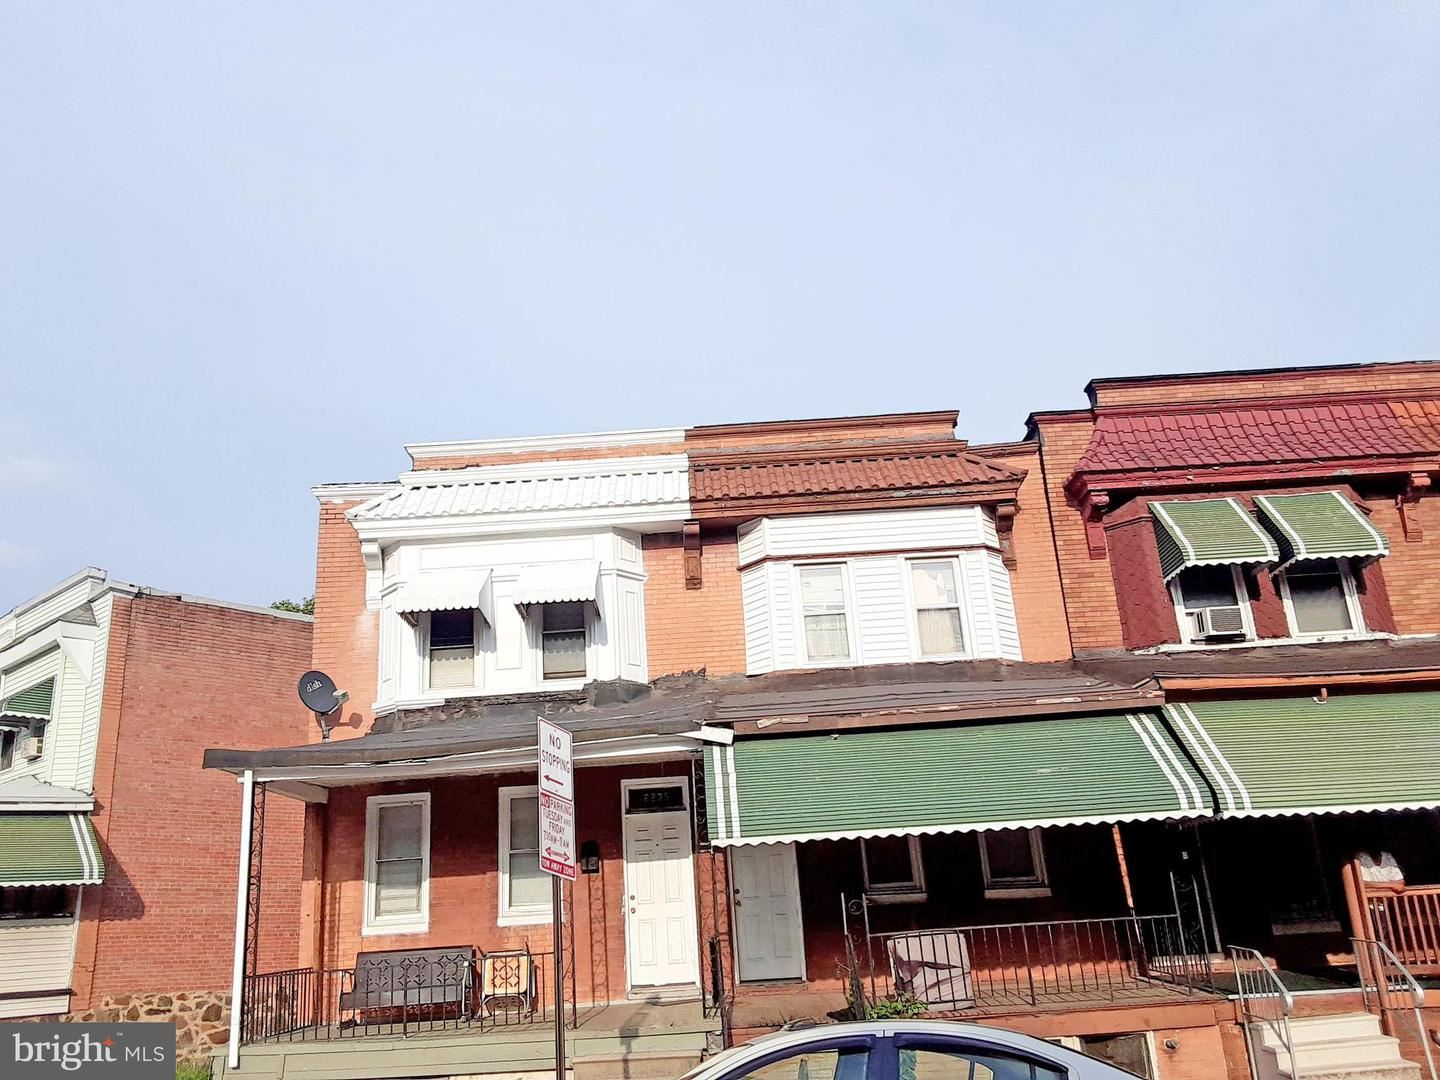 2233 HOMEWOOD AVE, Baltimore, MD 21218 - MLS#: MDBA548952